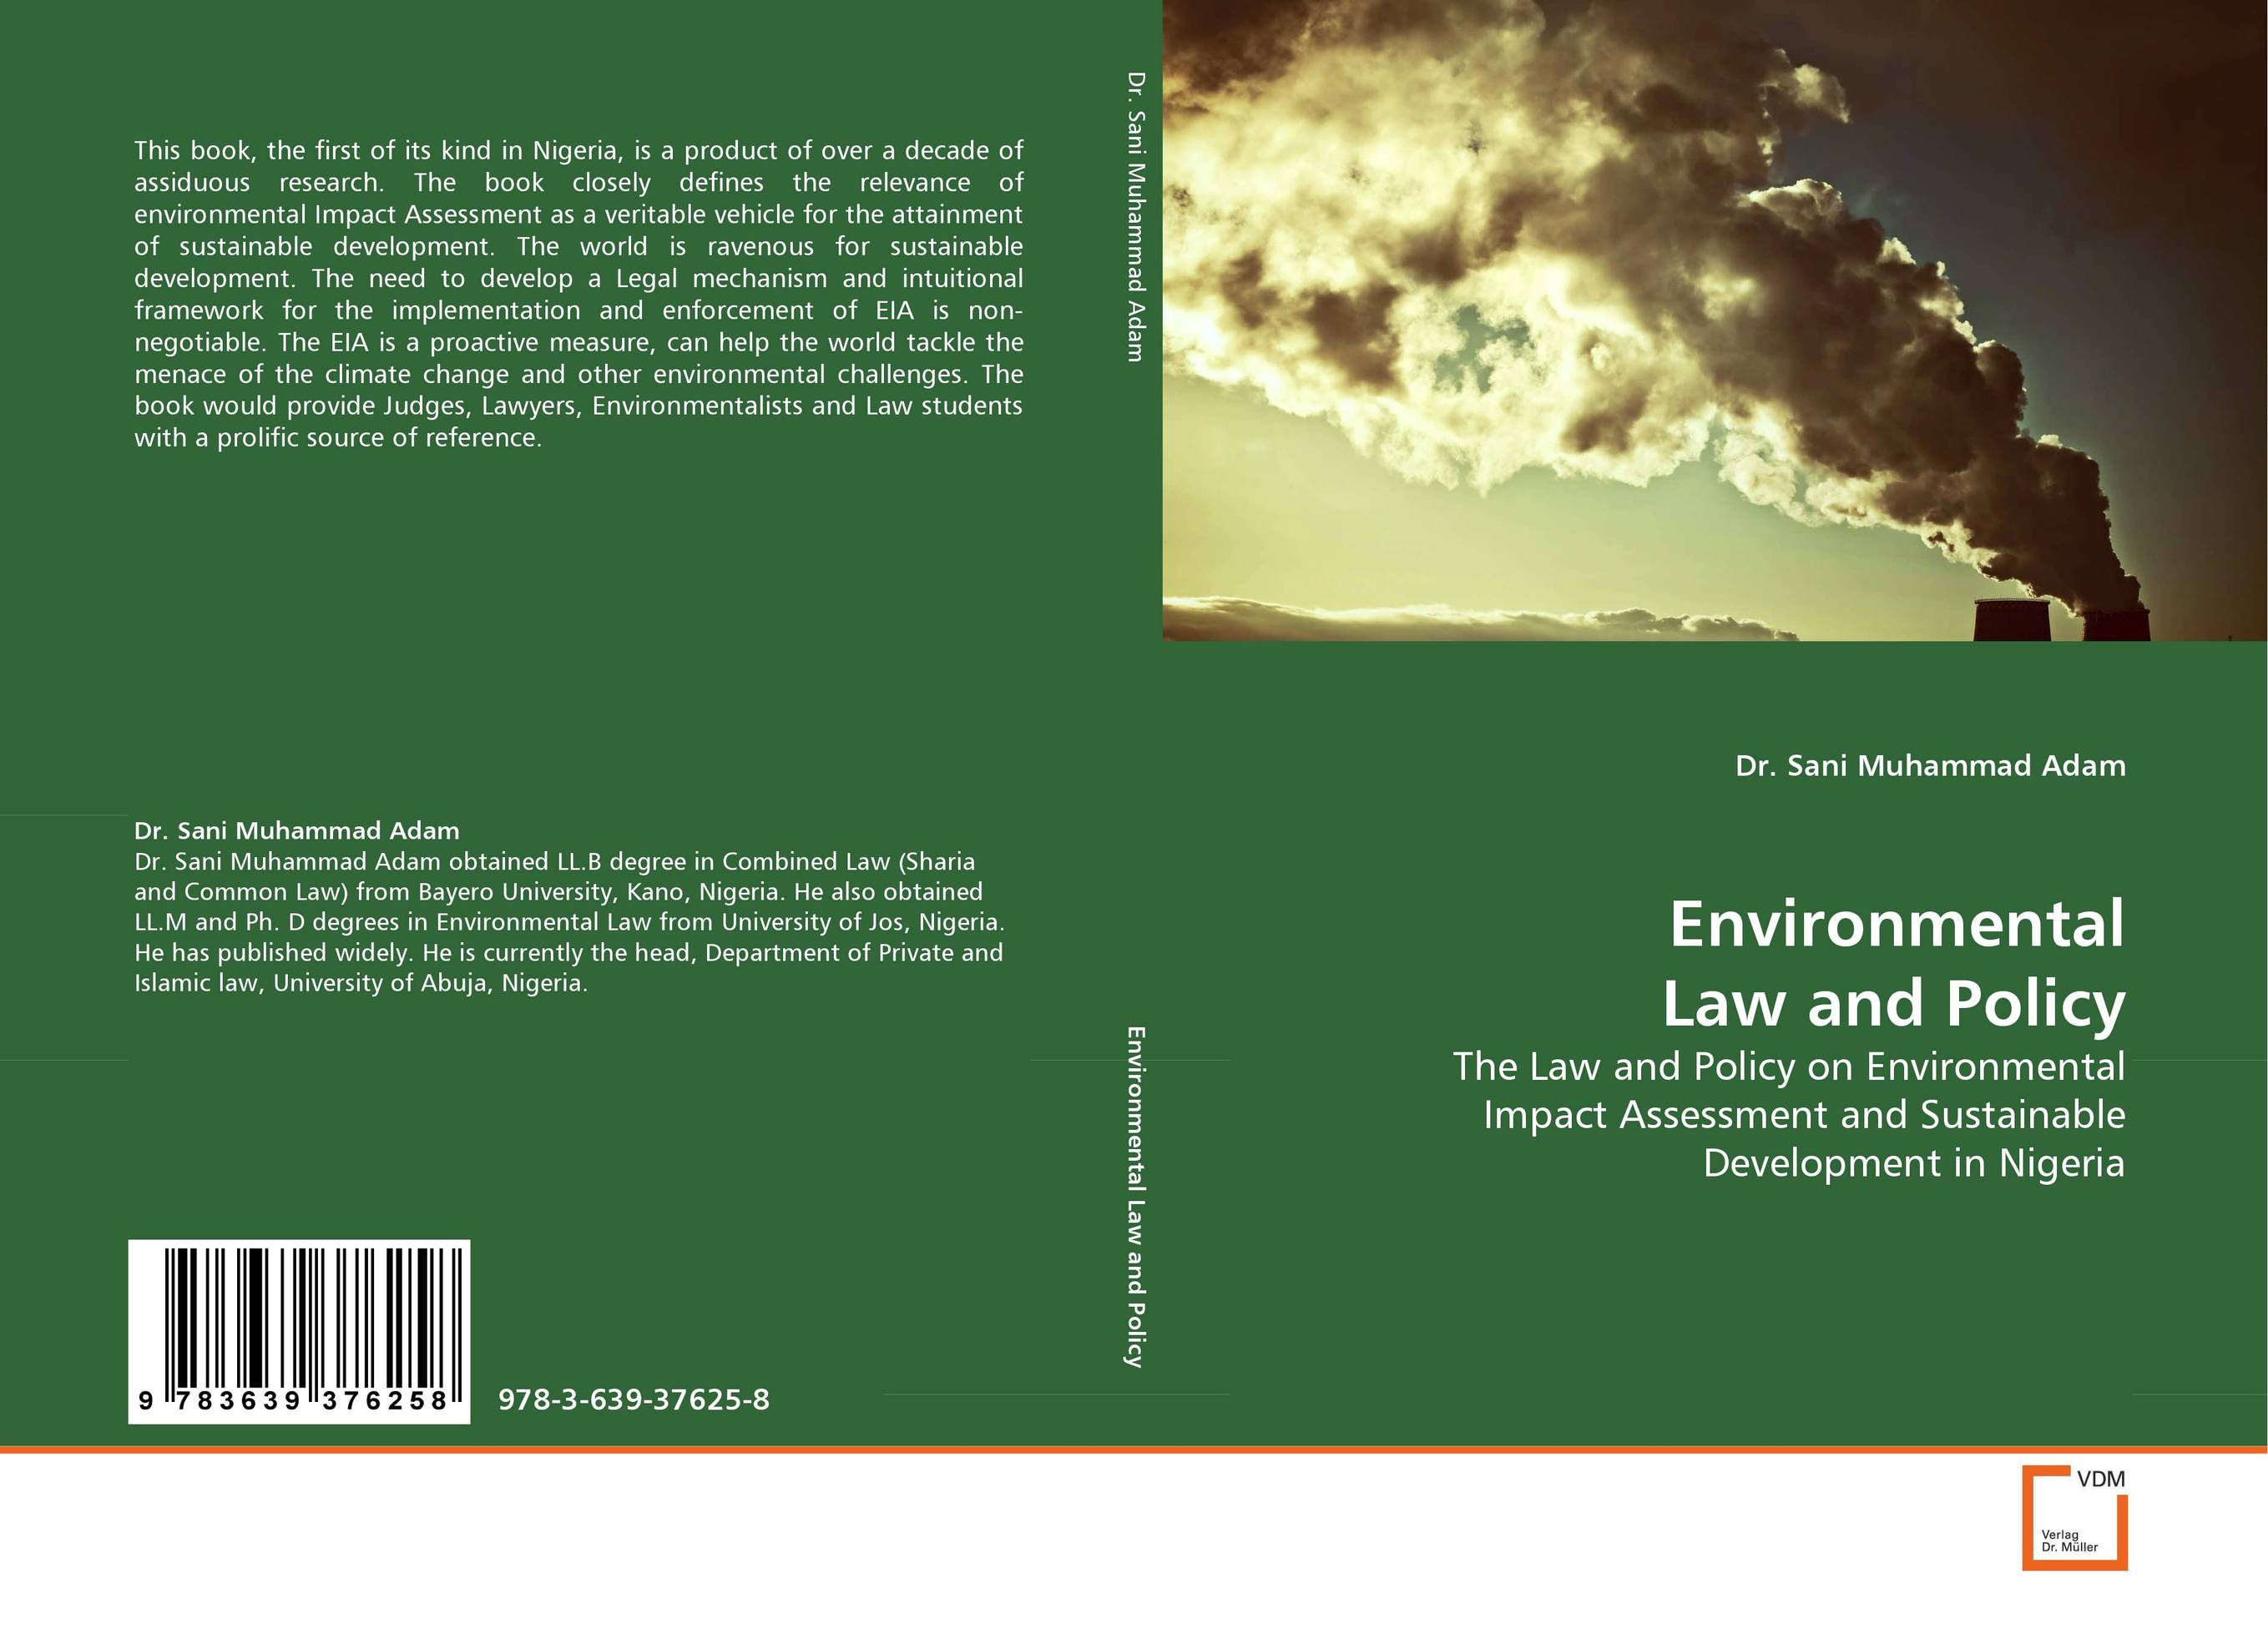 Environmental Law and Policy an evaluation of the role of eia database in promoting eia practice